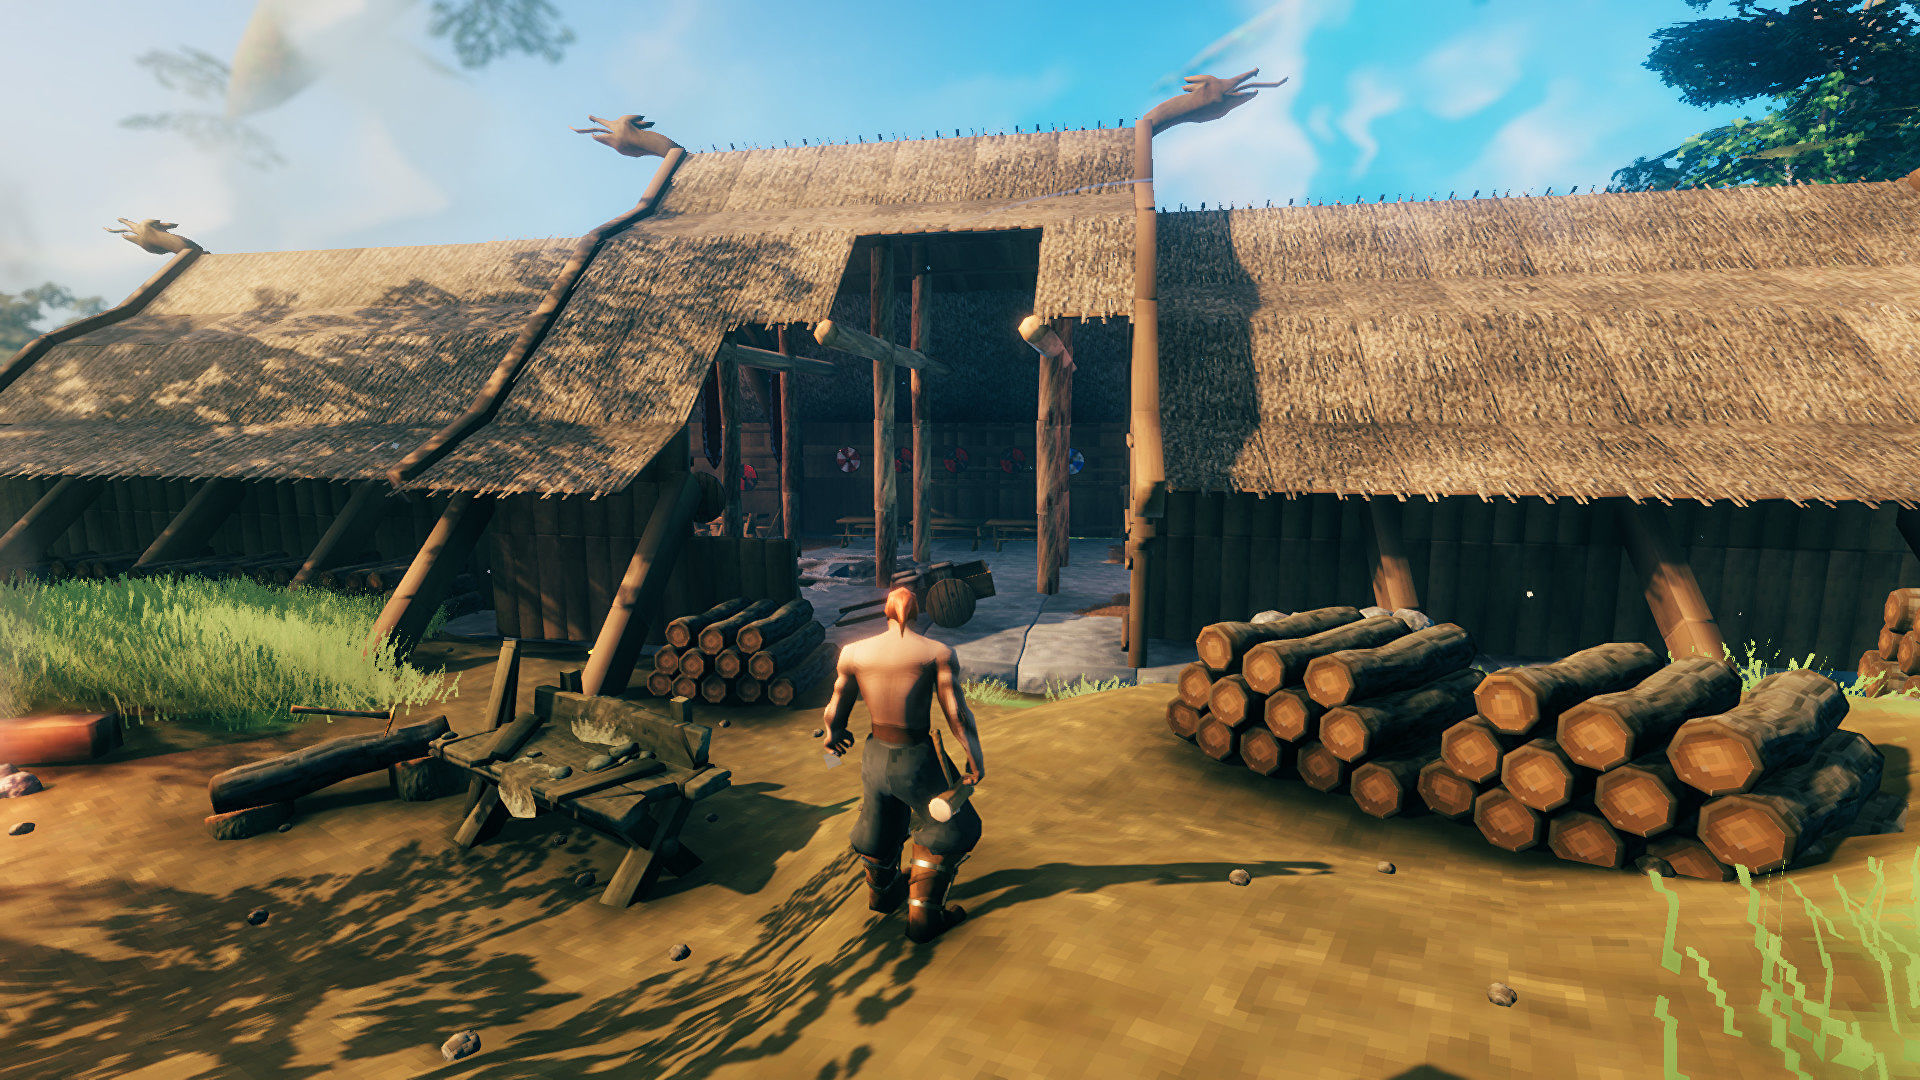 Viking crafting game Valheim lands in early access in February